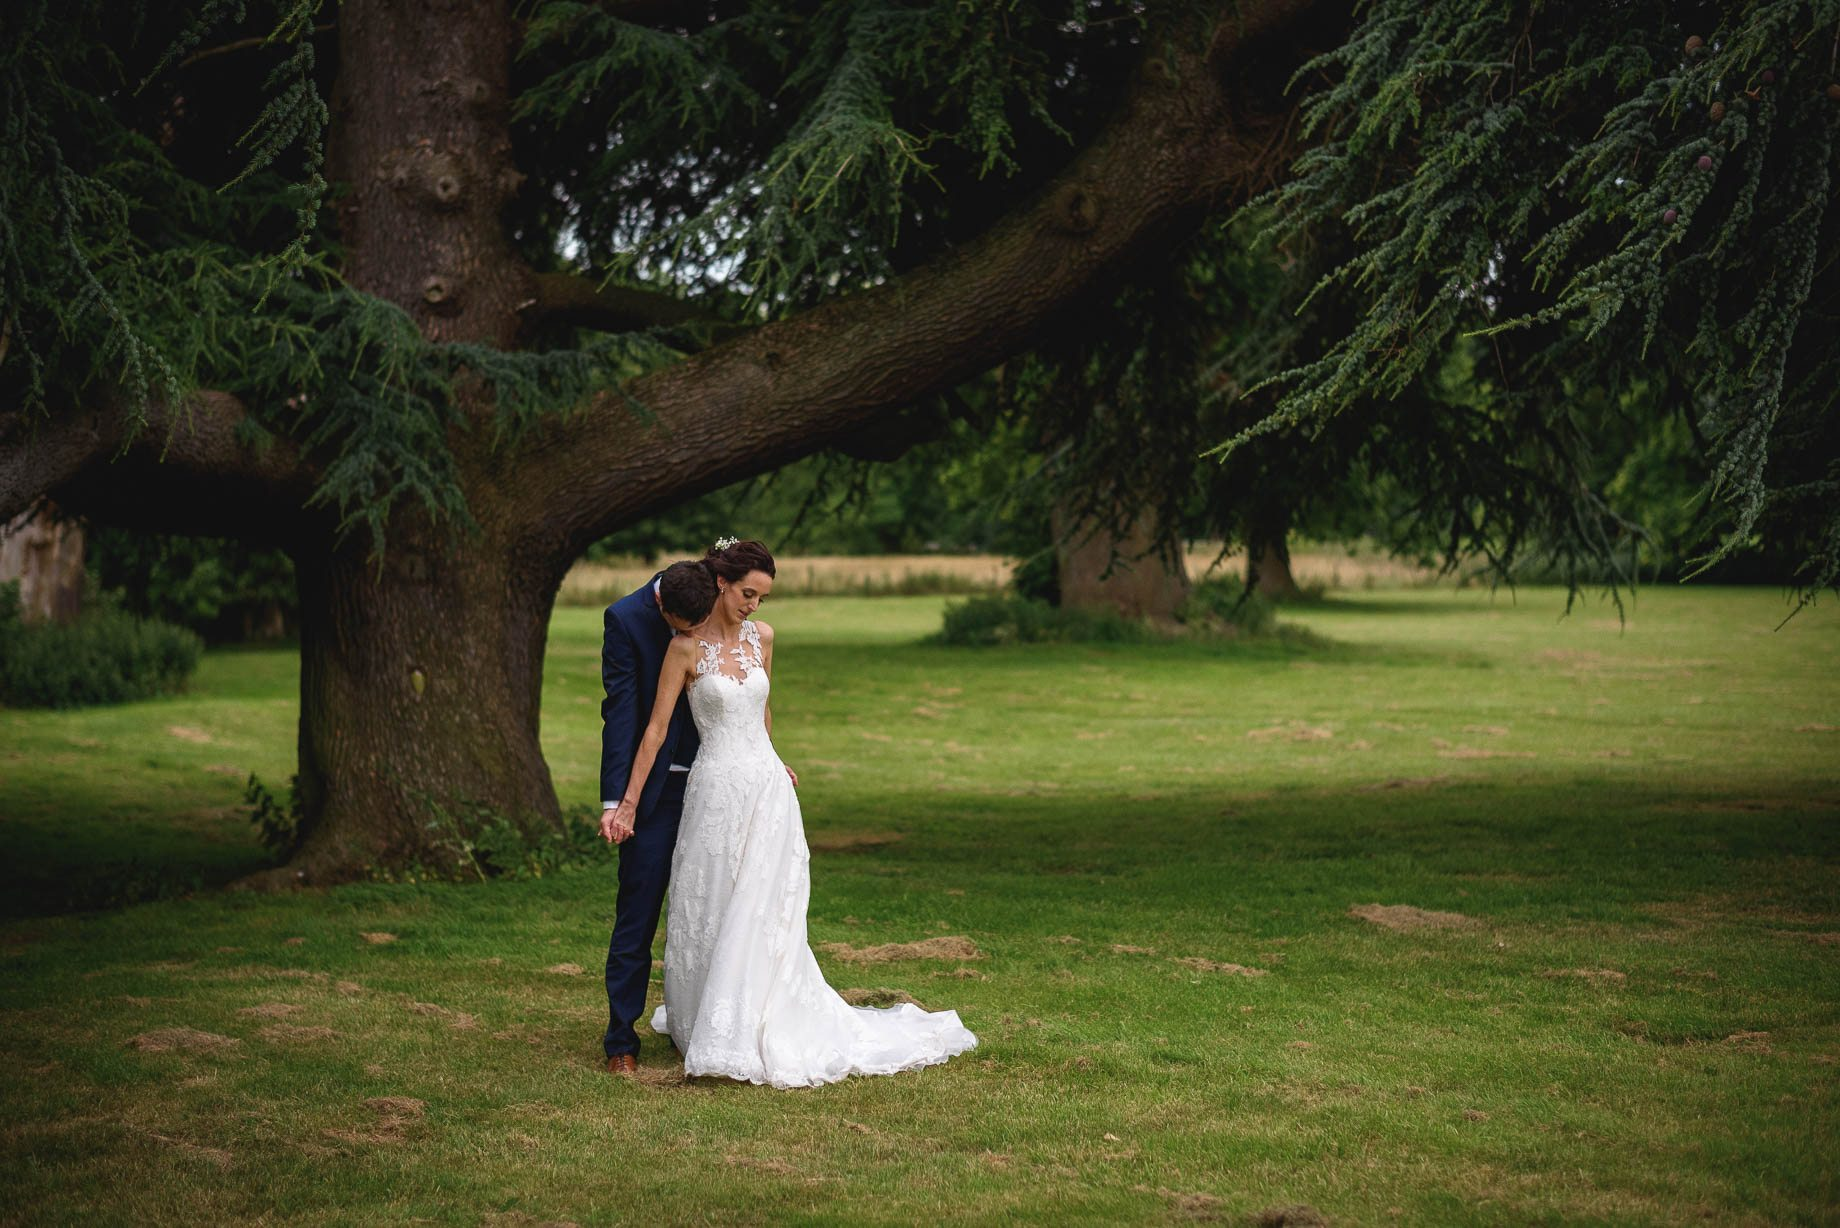 Hertfordshire wedding photography - Sarah and Stephen by Guy Collier Photography (143 of 161)